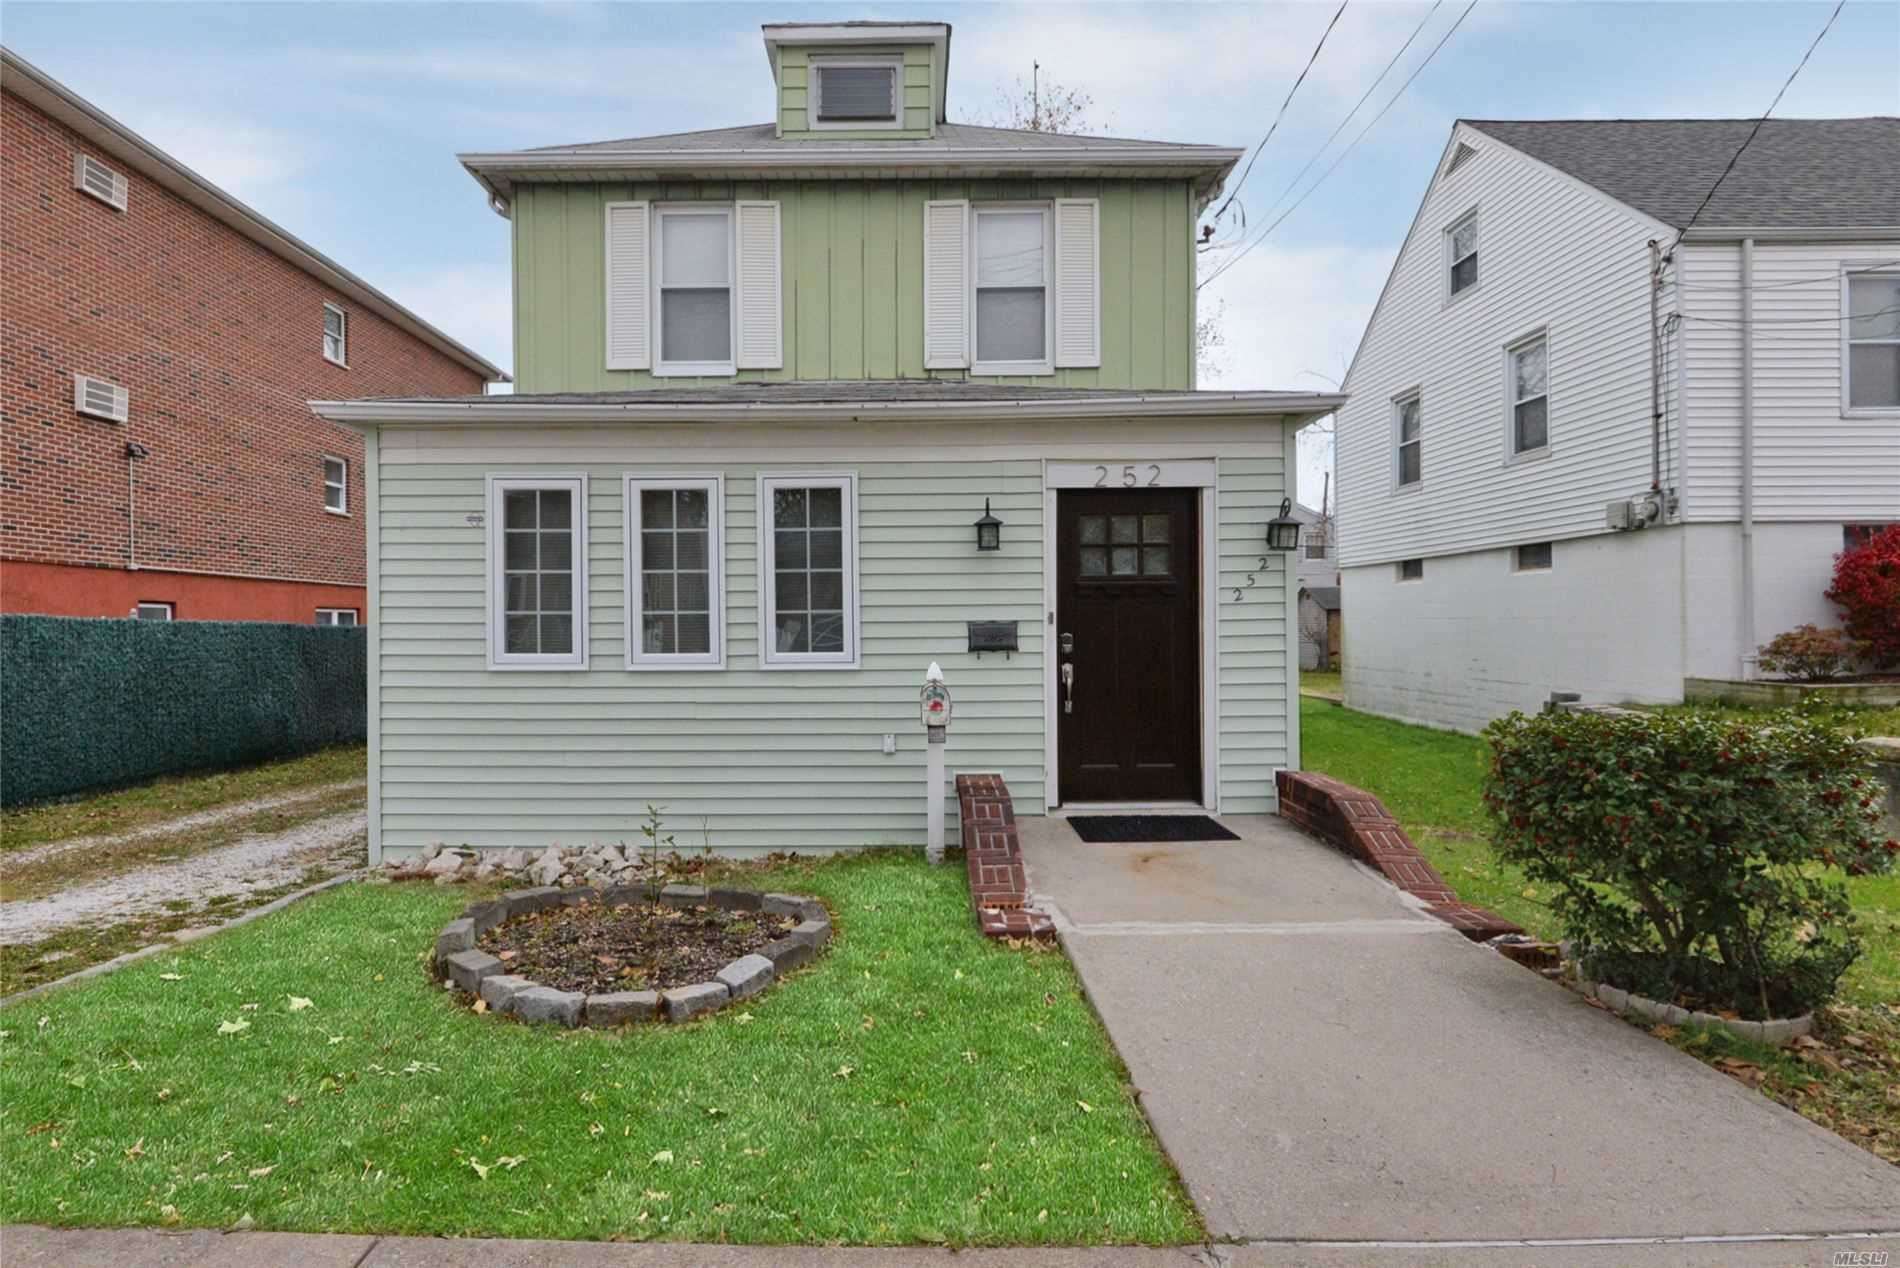 252 Buttrick Ave, Bronx, NY 10465 - MLS#: 3182273